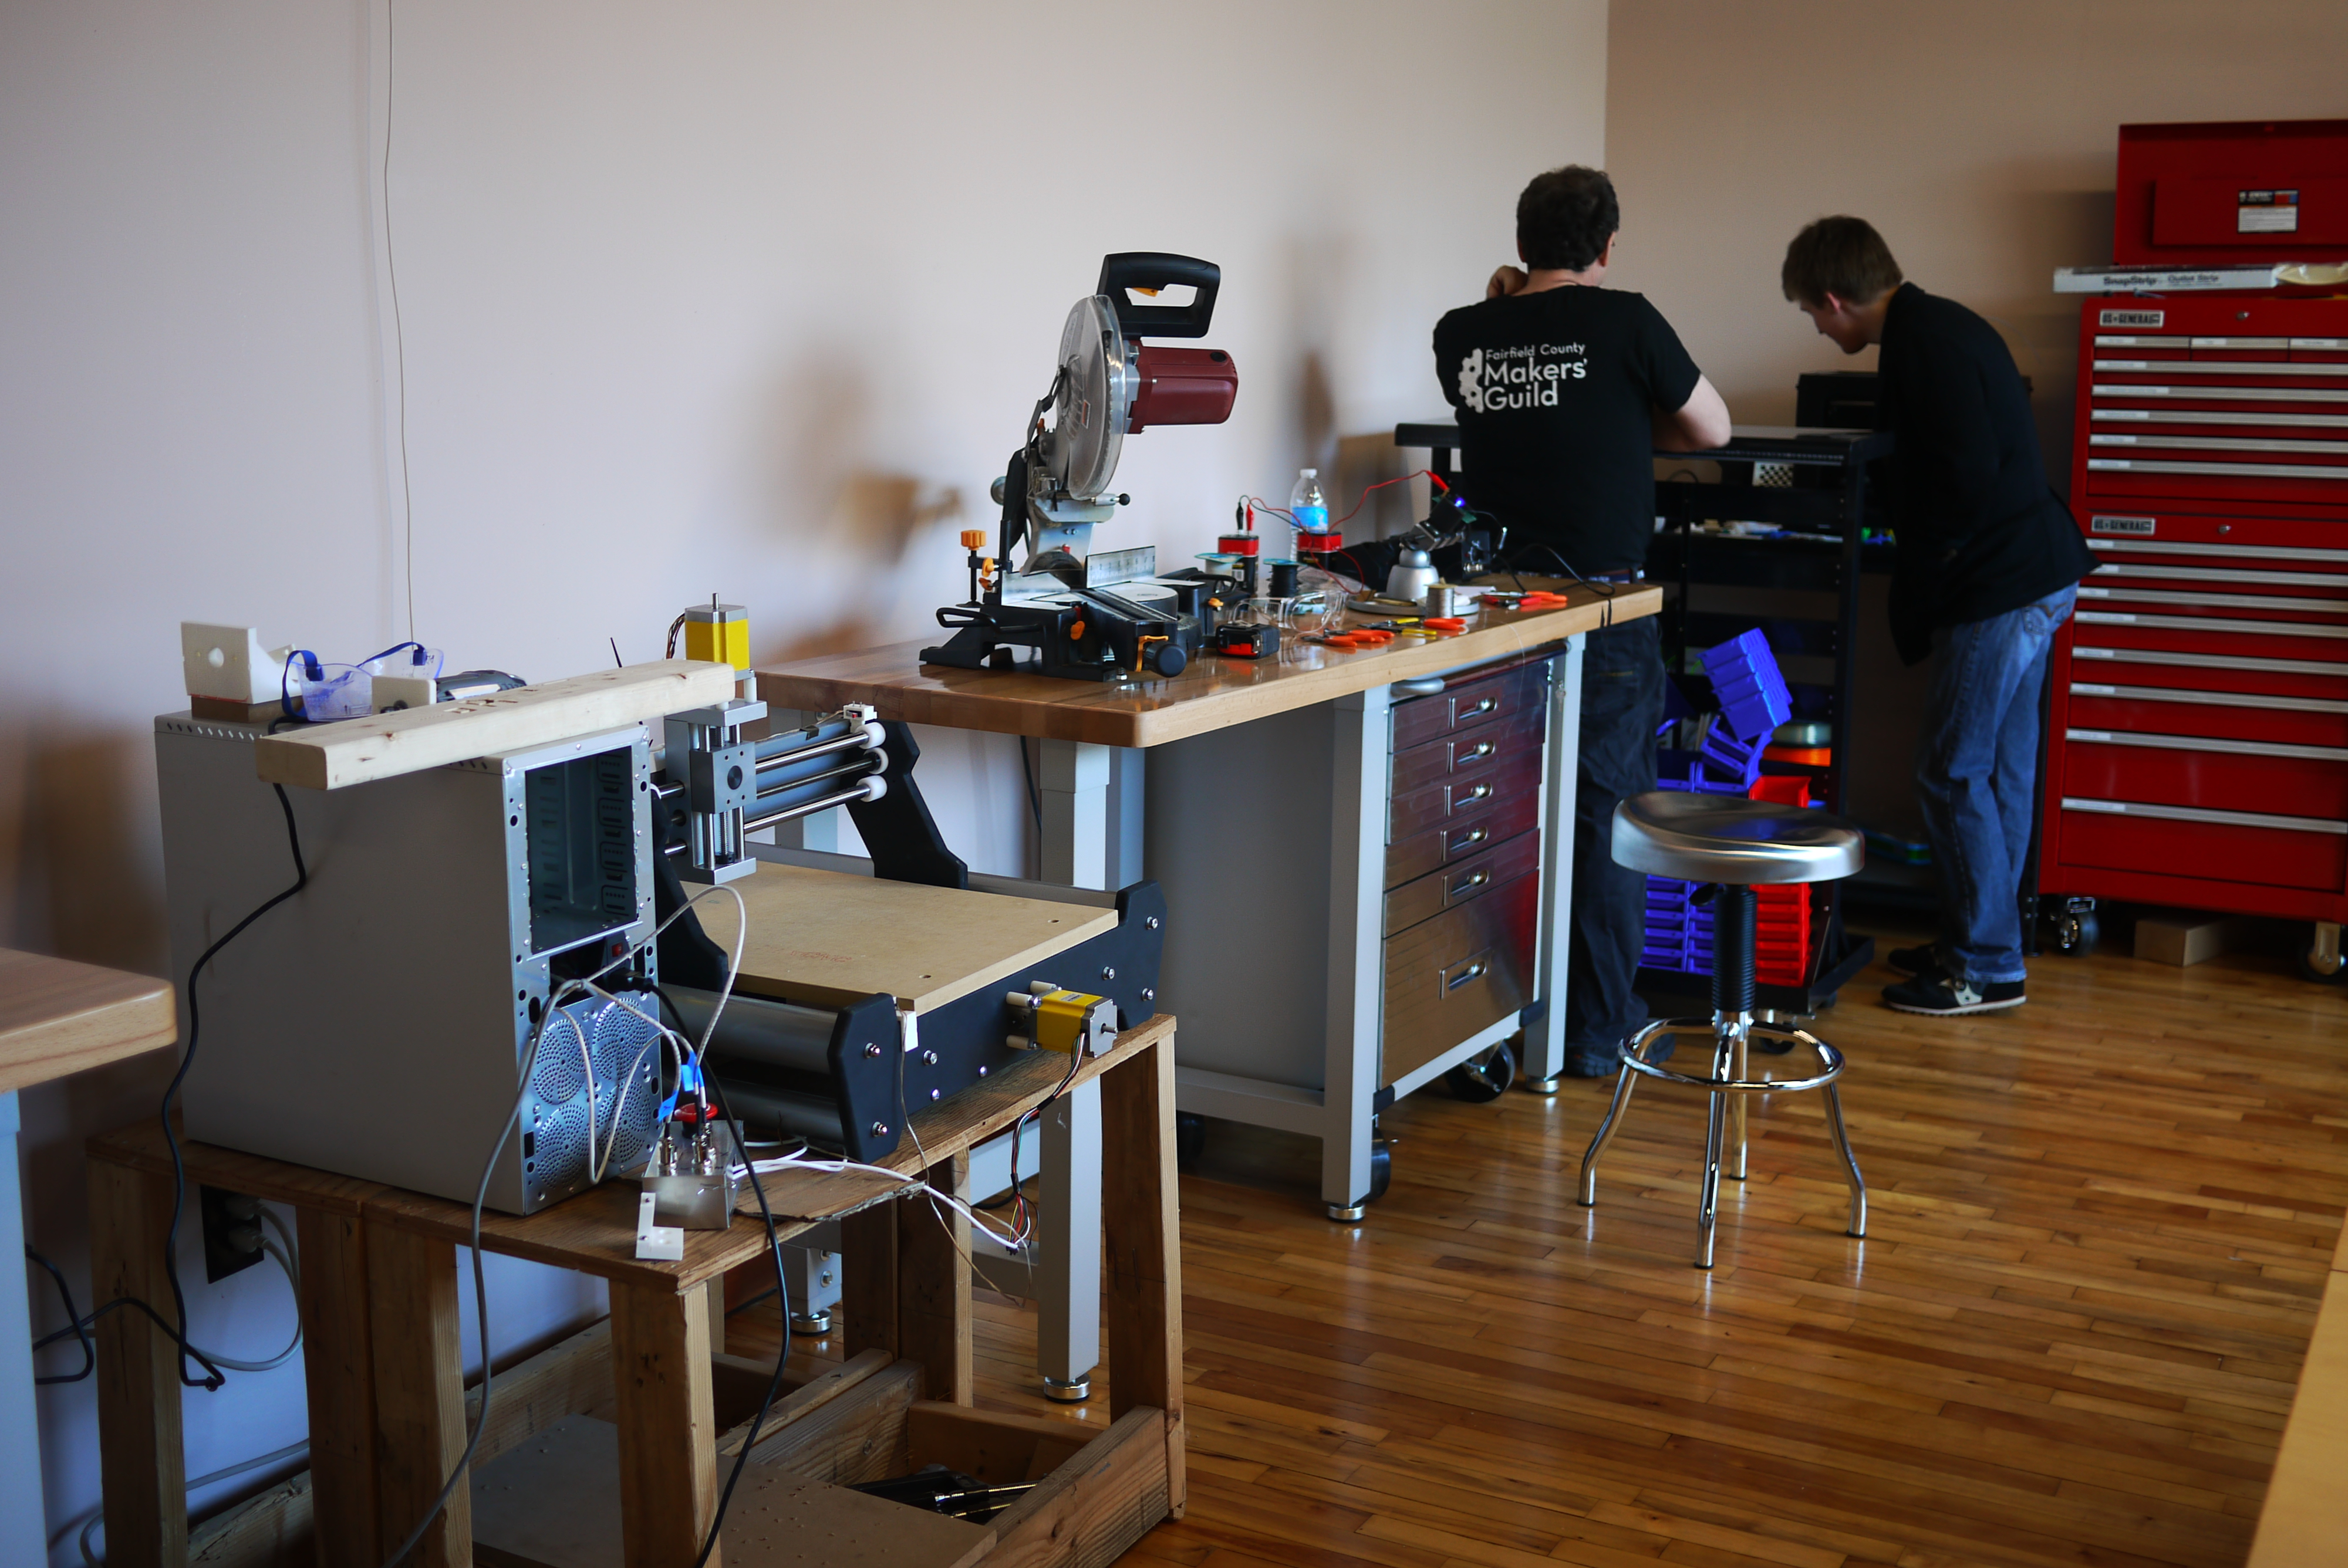 These workshop tools are located in the second, smaller room in the makerspace.